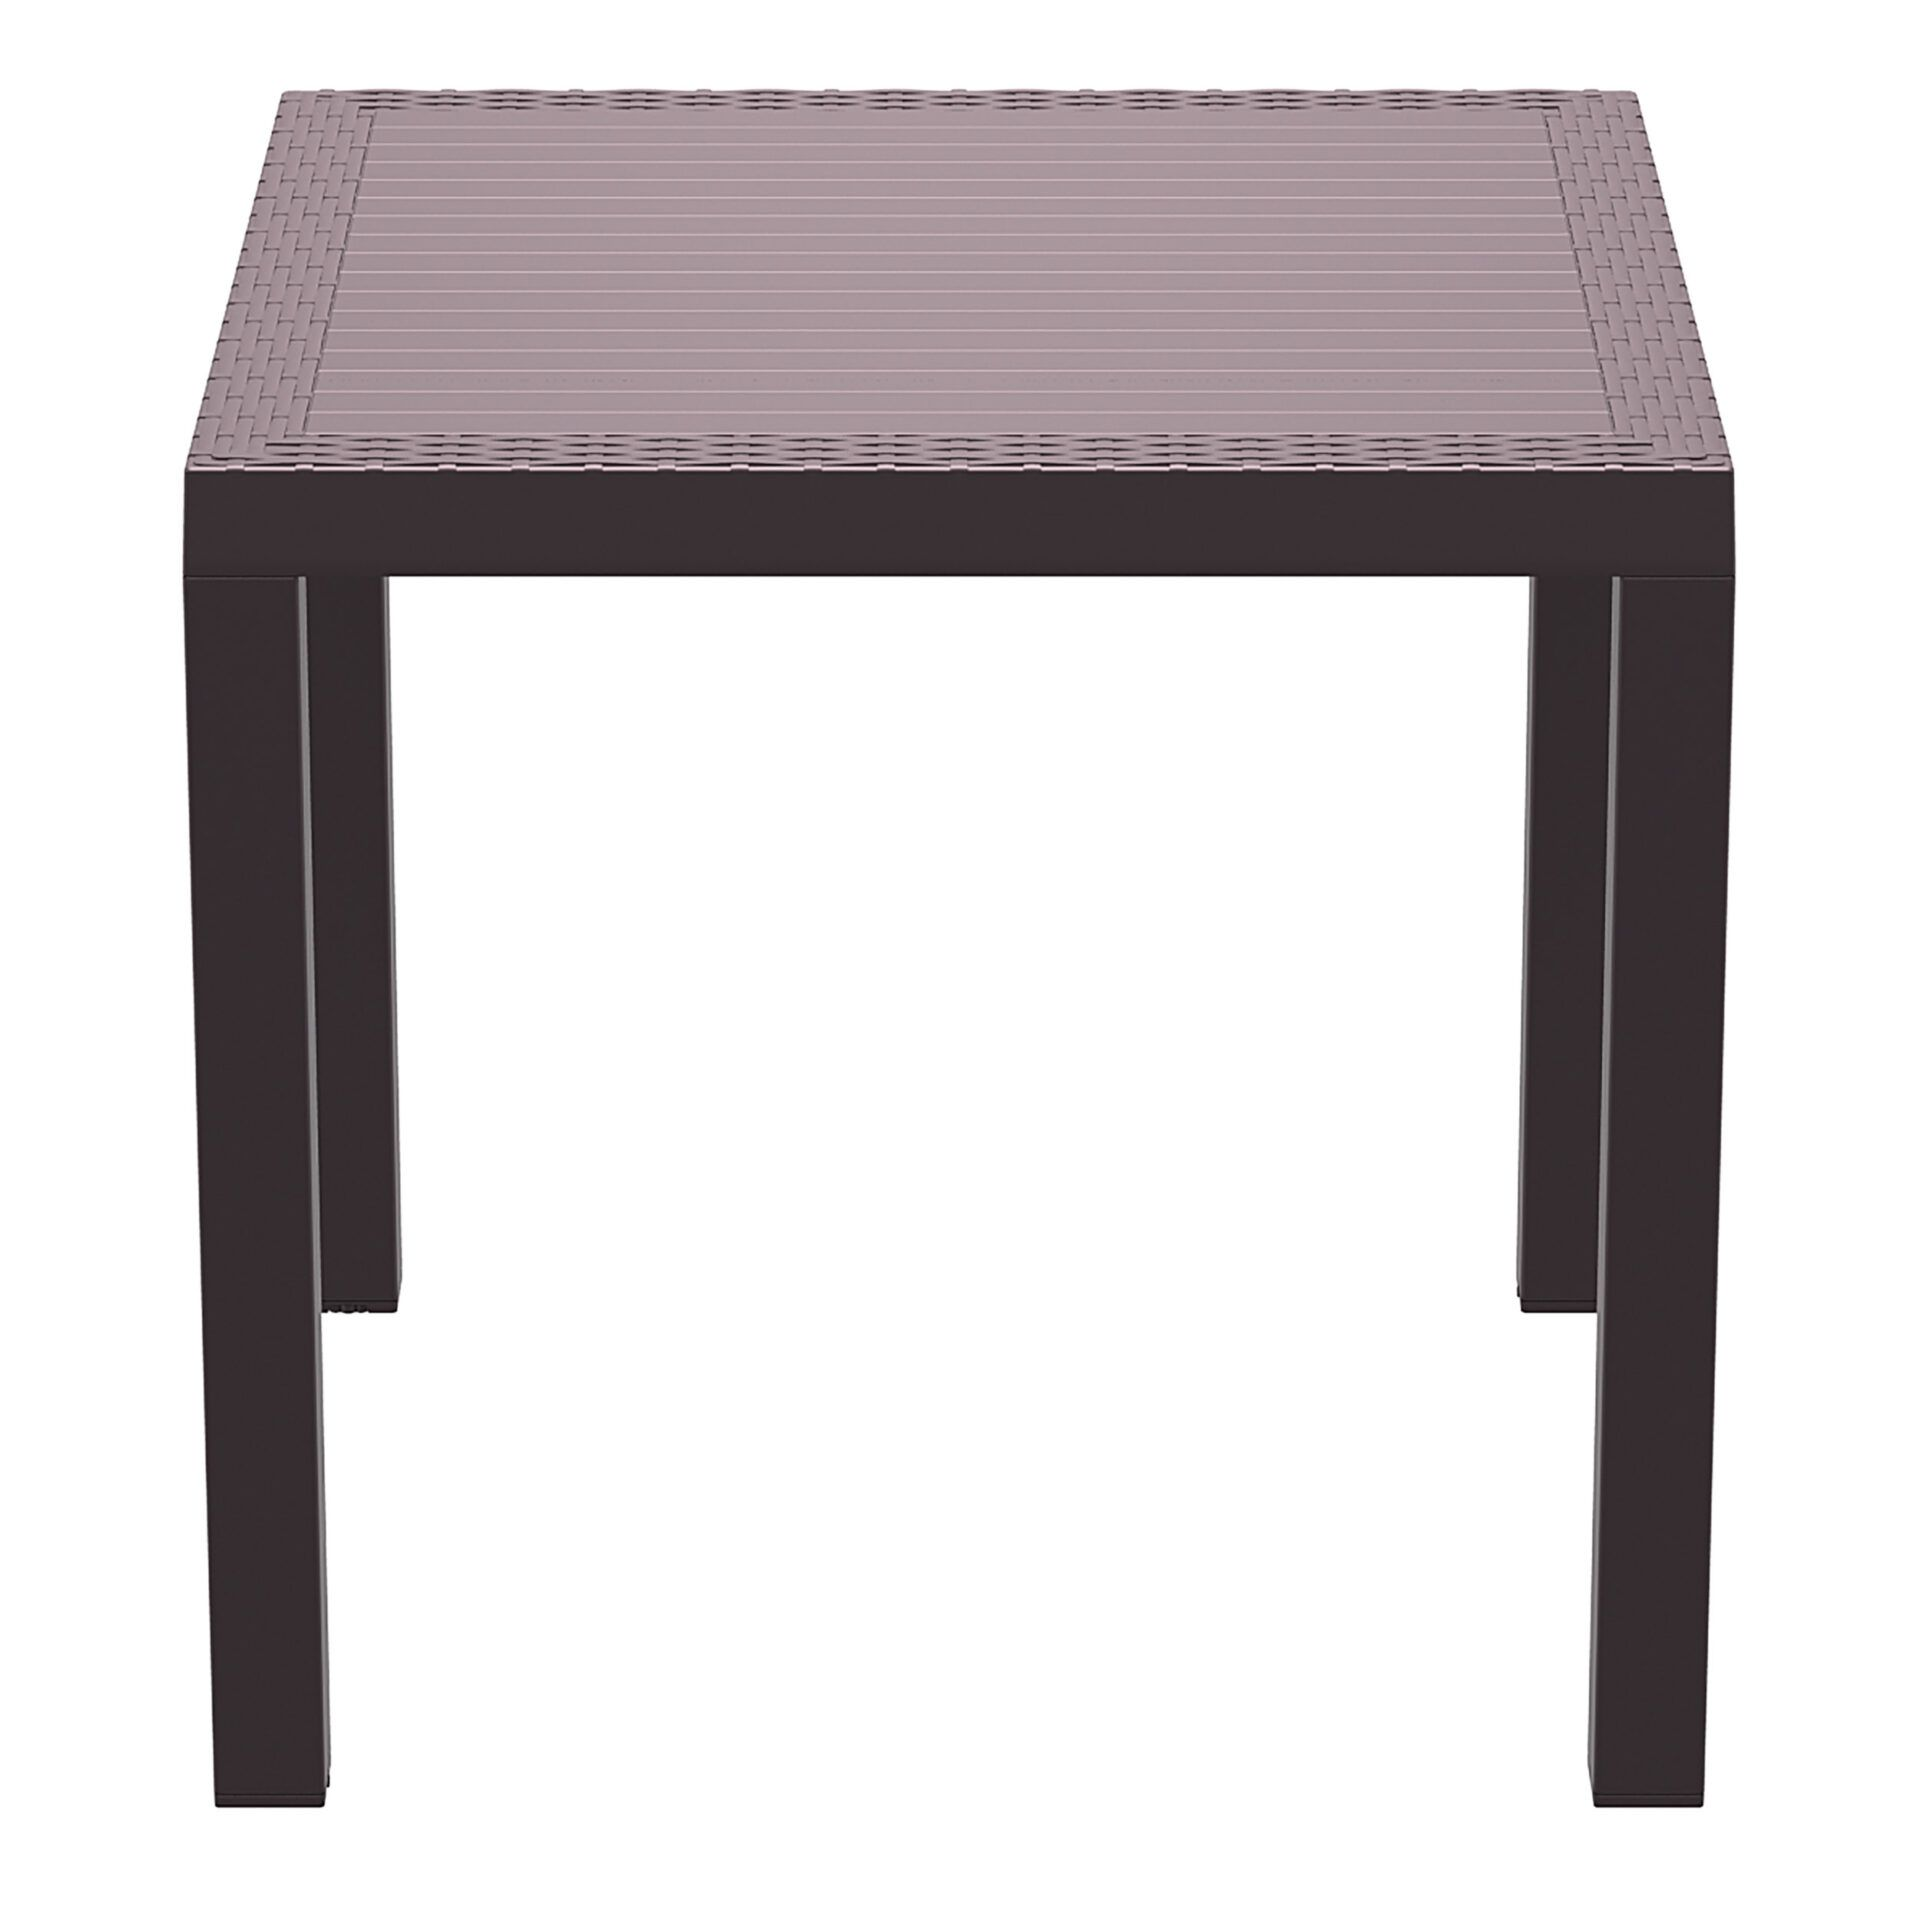 outdoor resin rattan cafe plastic top bali table 80 brown side